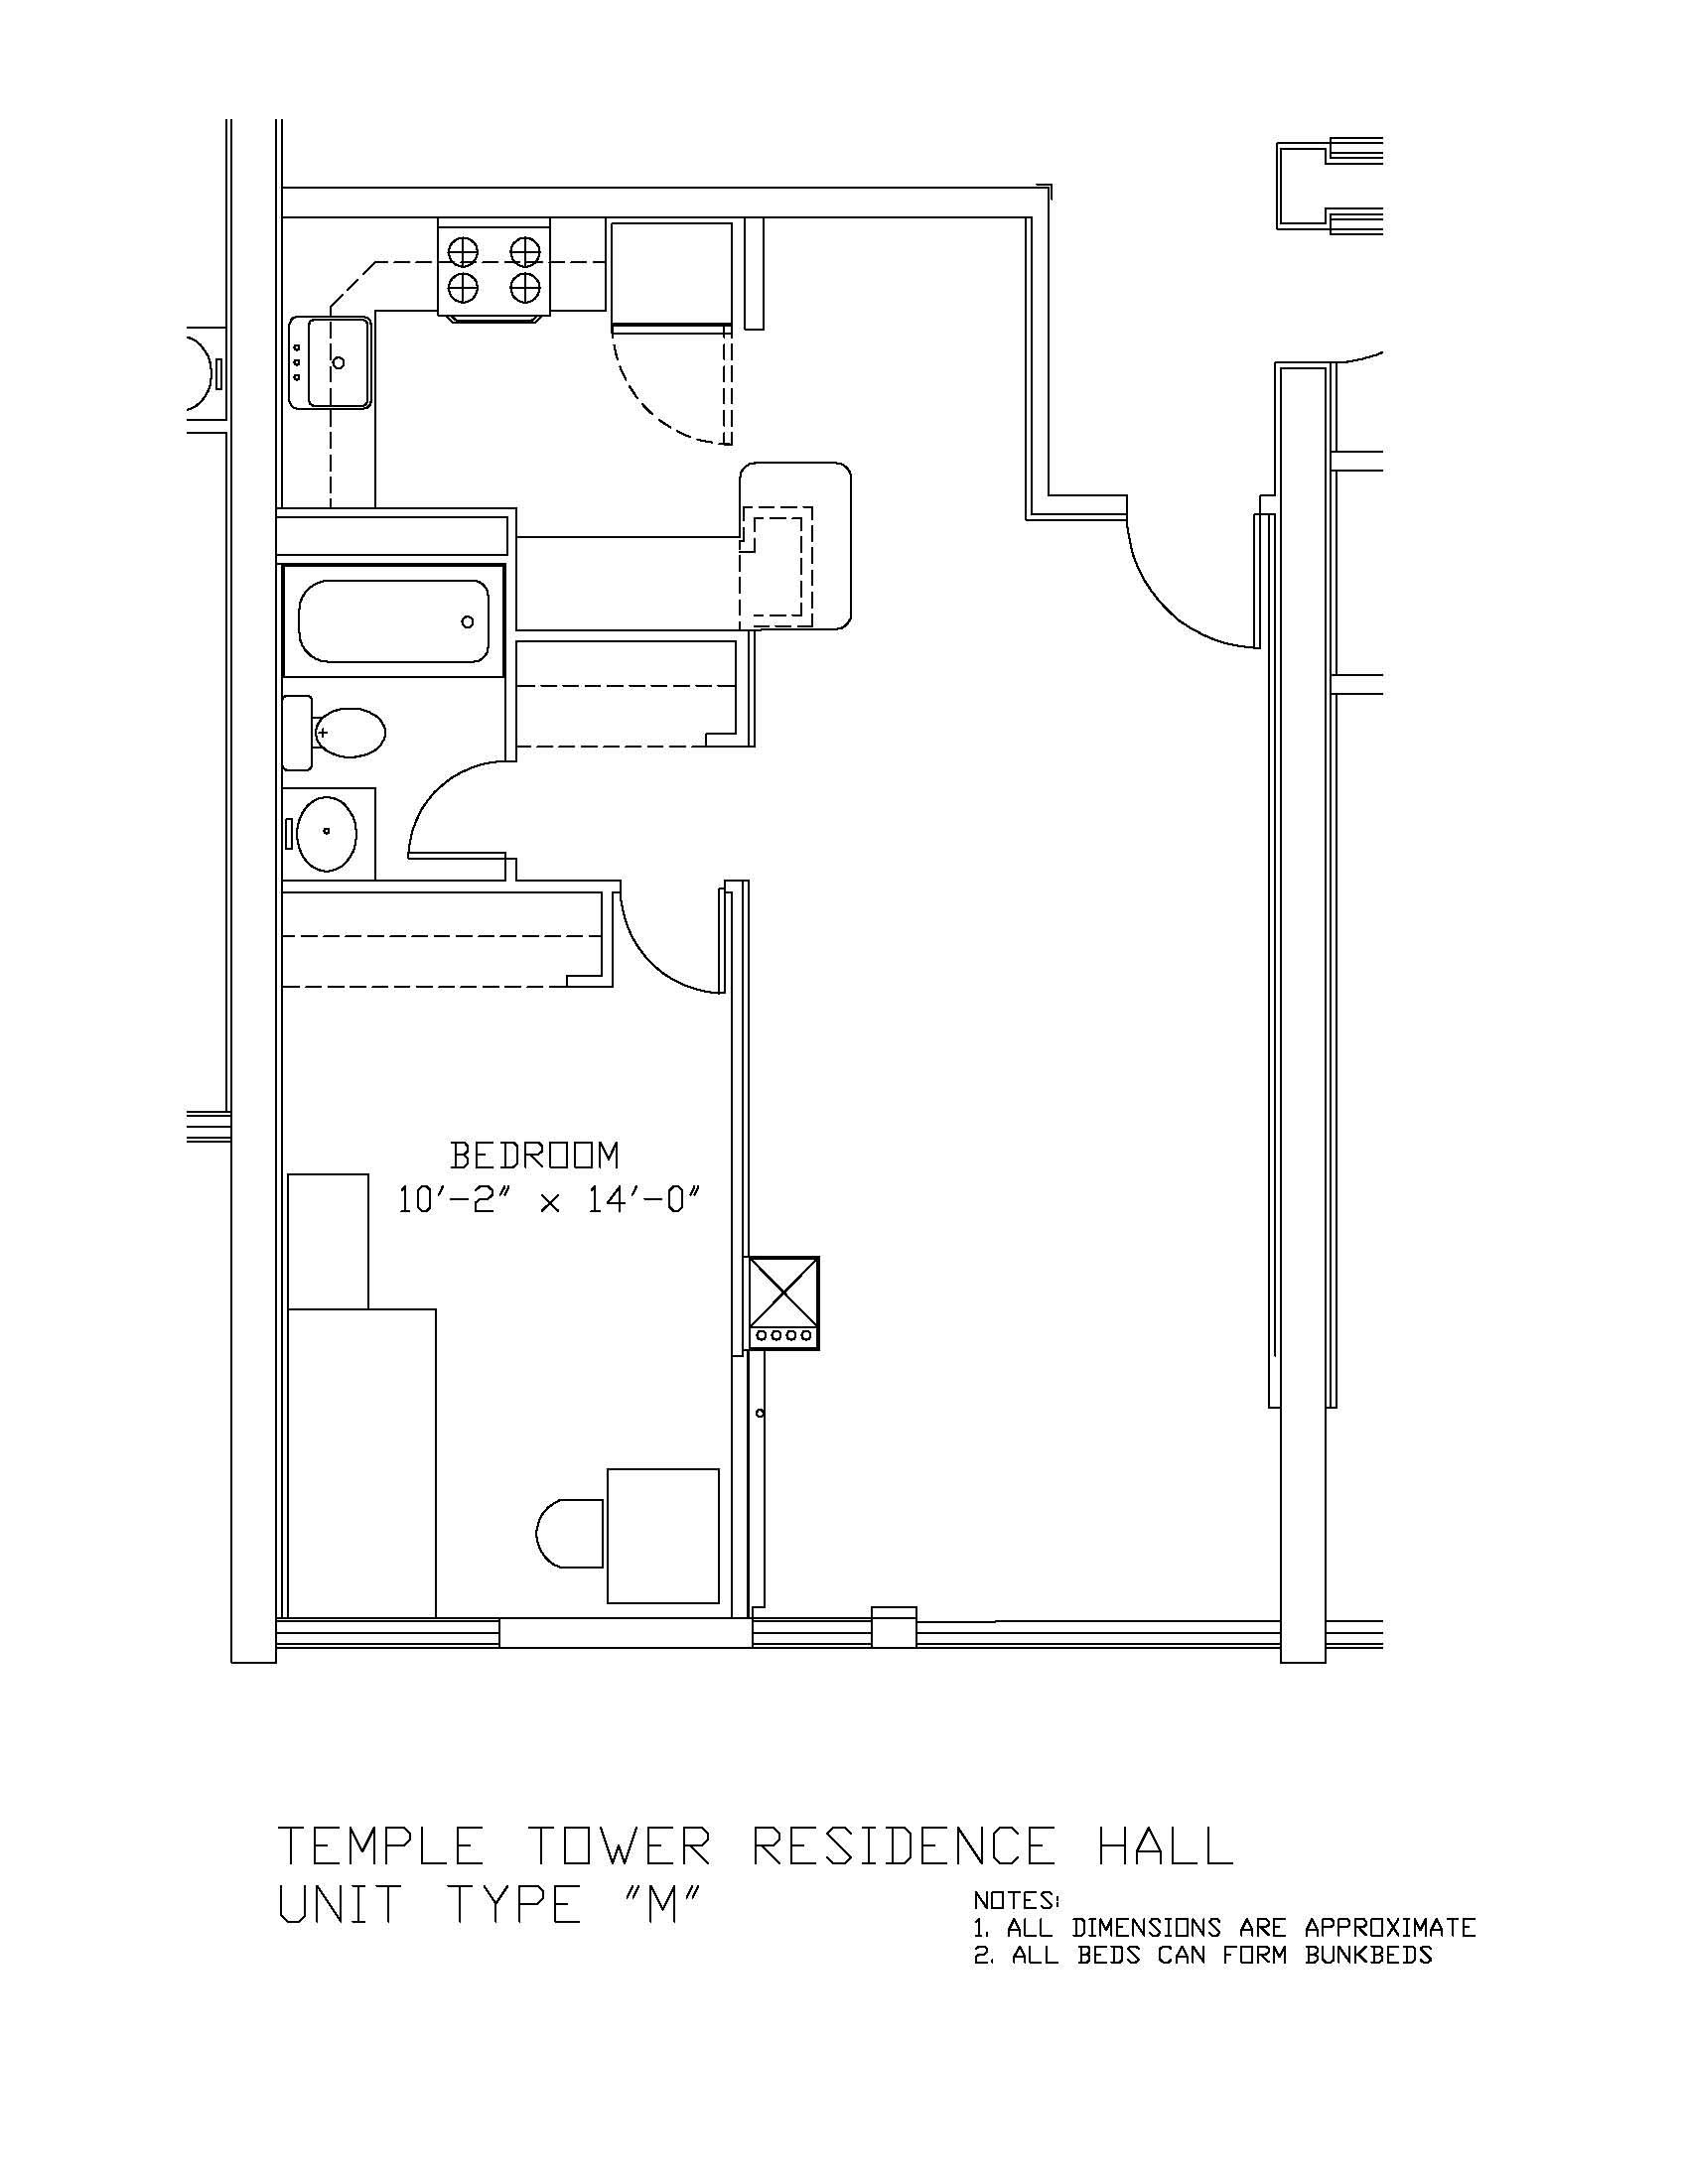 Temple Towers: Type M